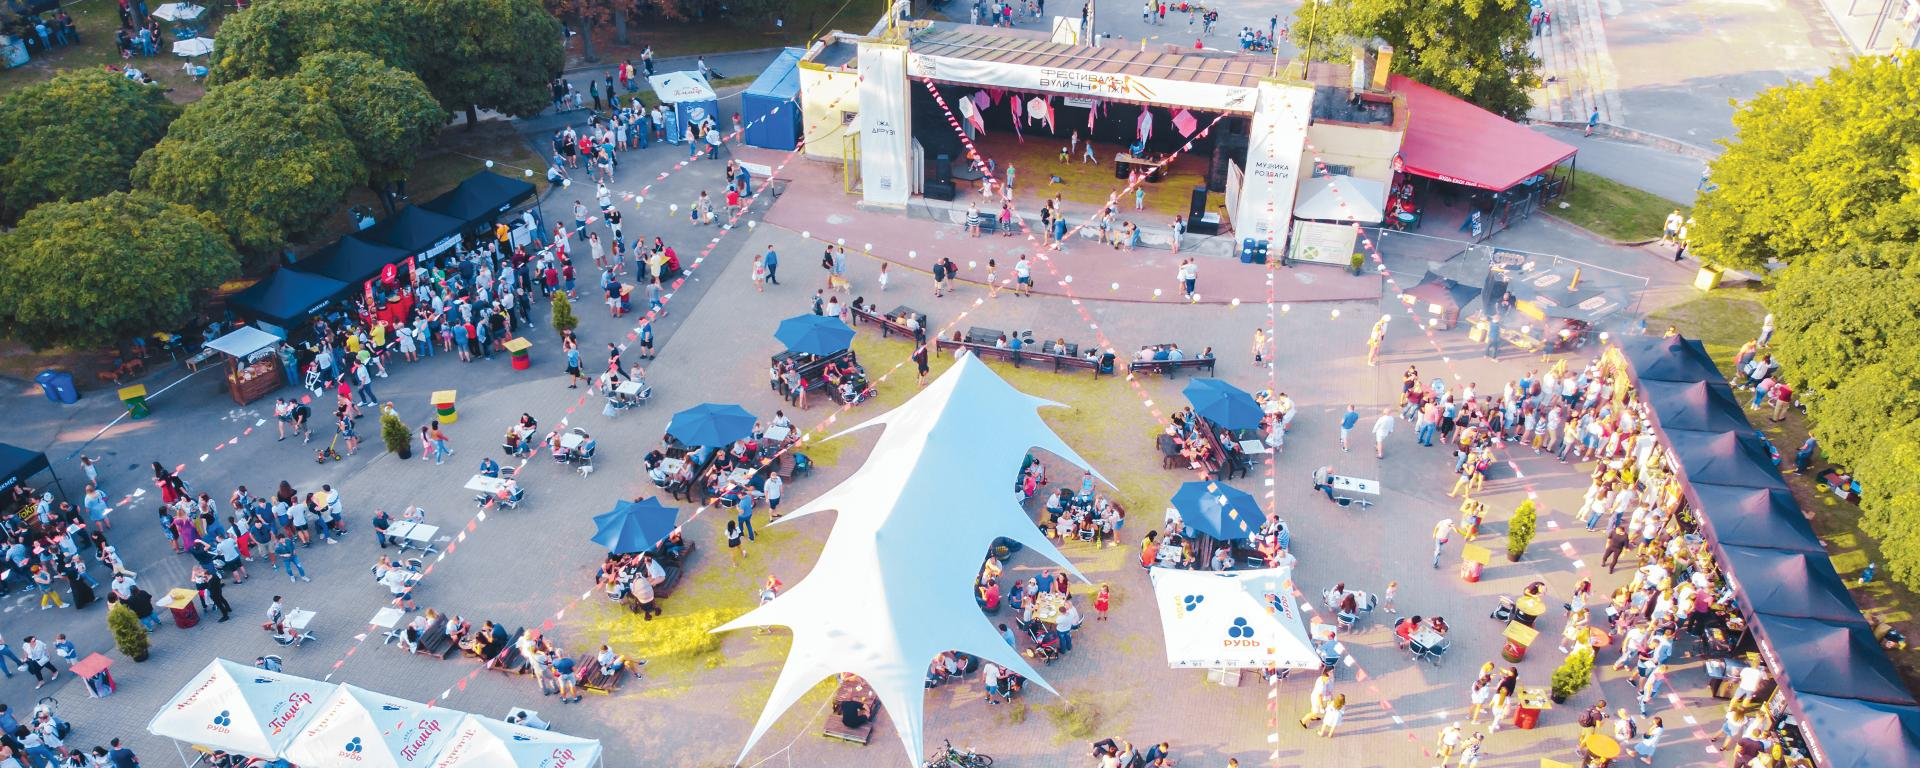 Concert in a park, picture taken from above